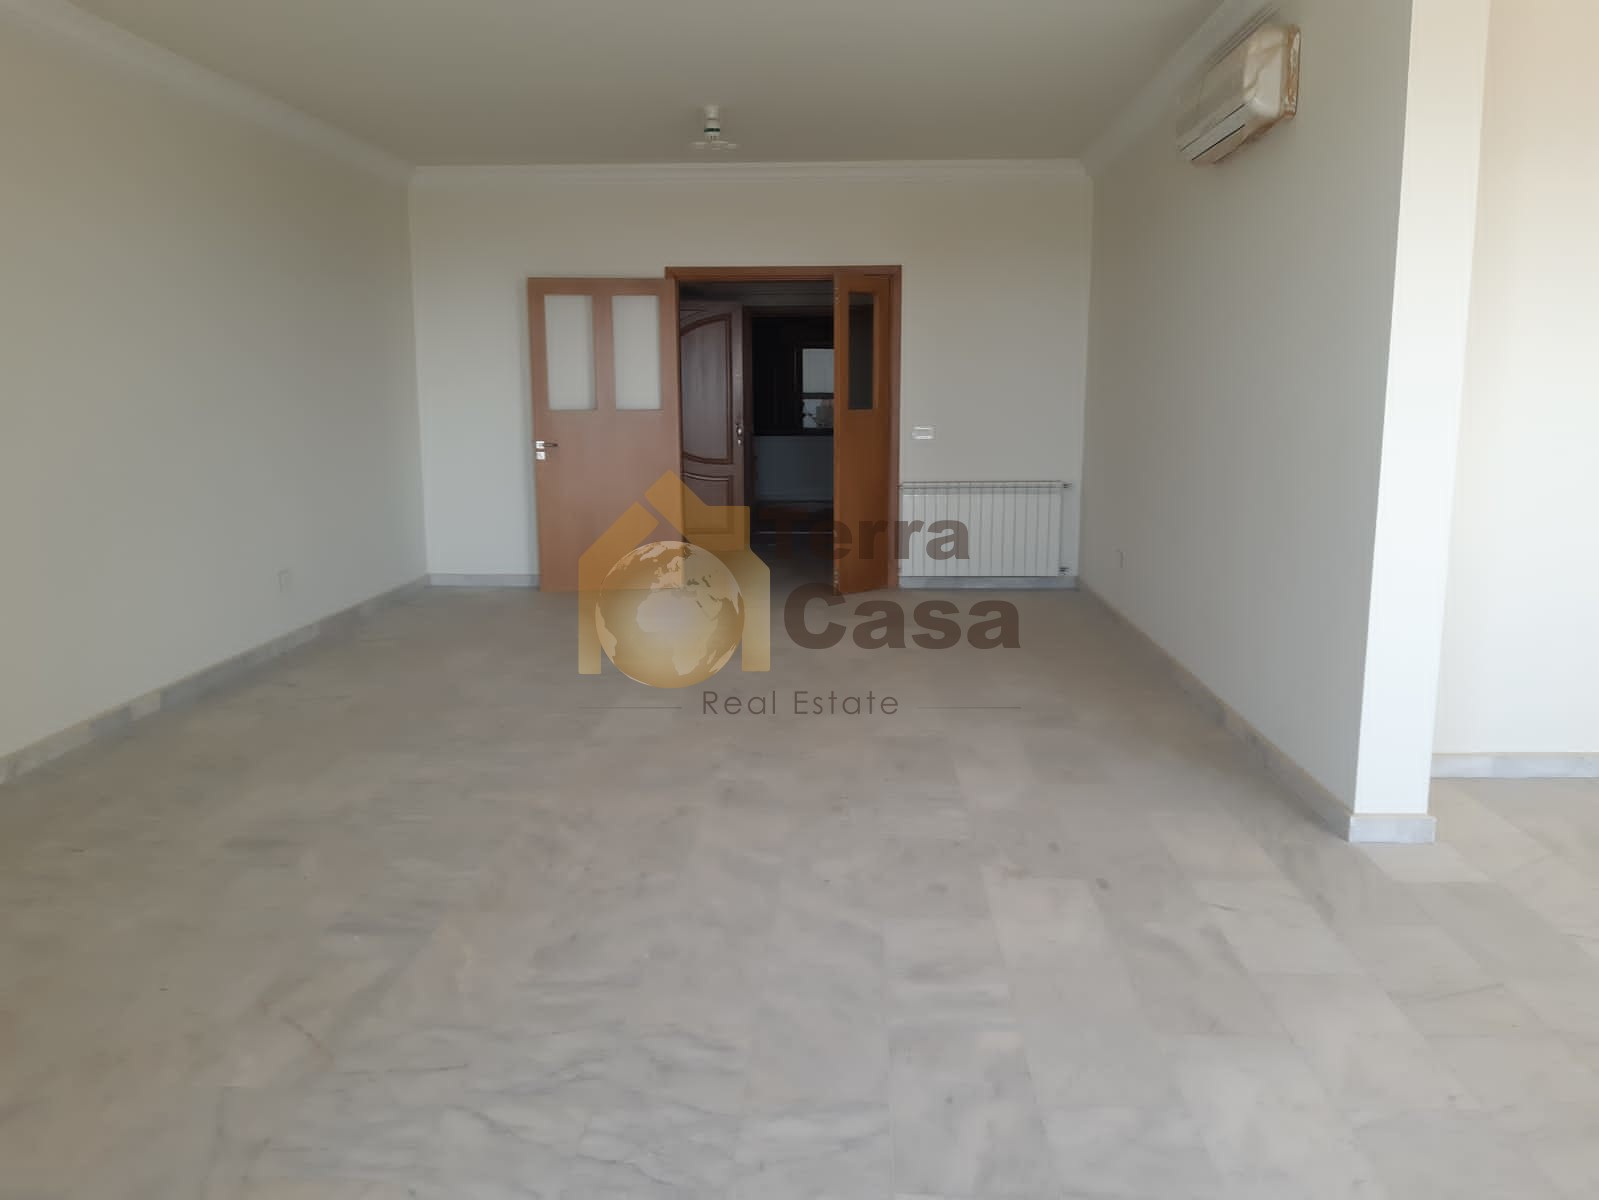 Fully decorated apartment nice view cash payment.